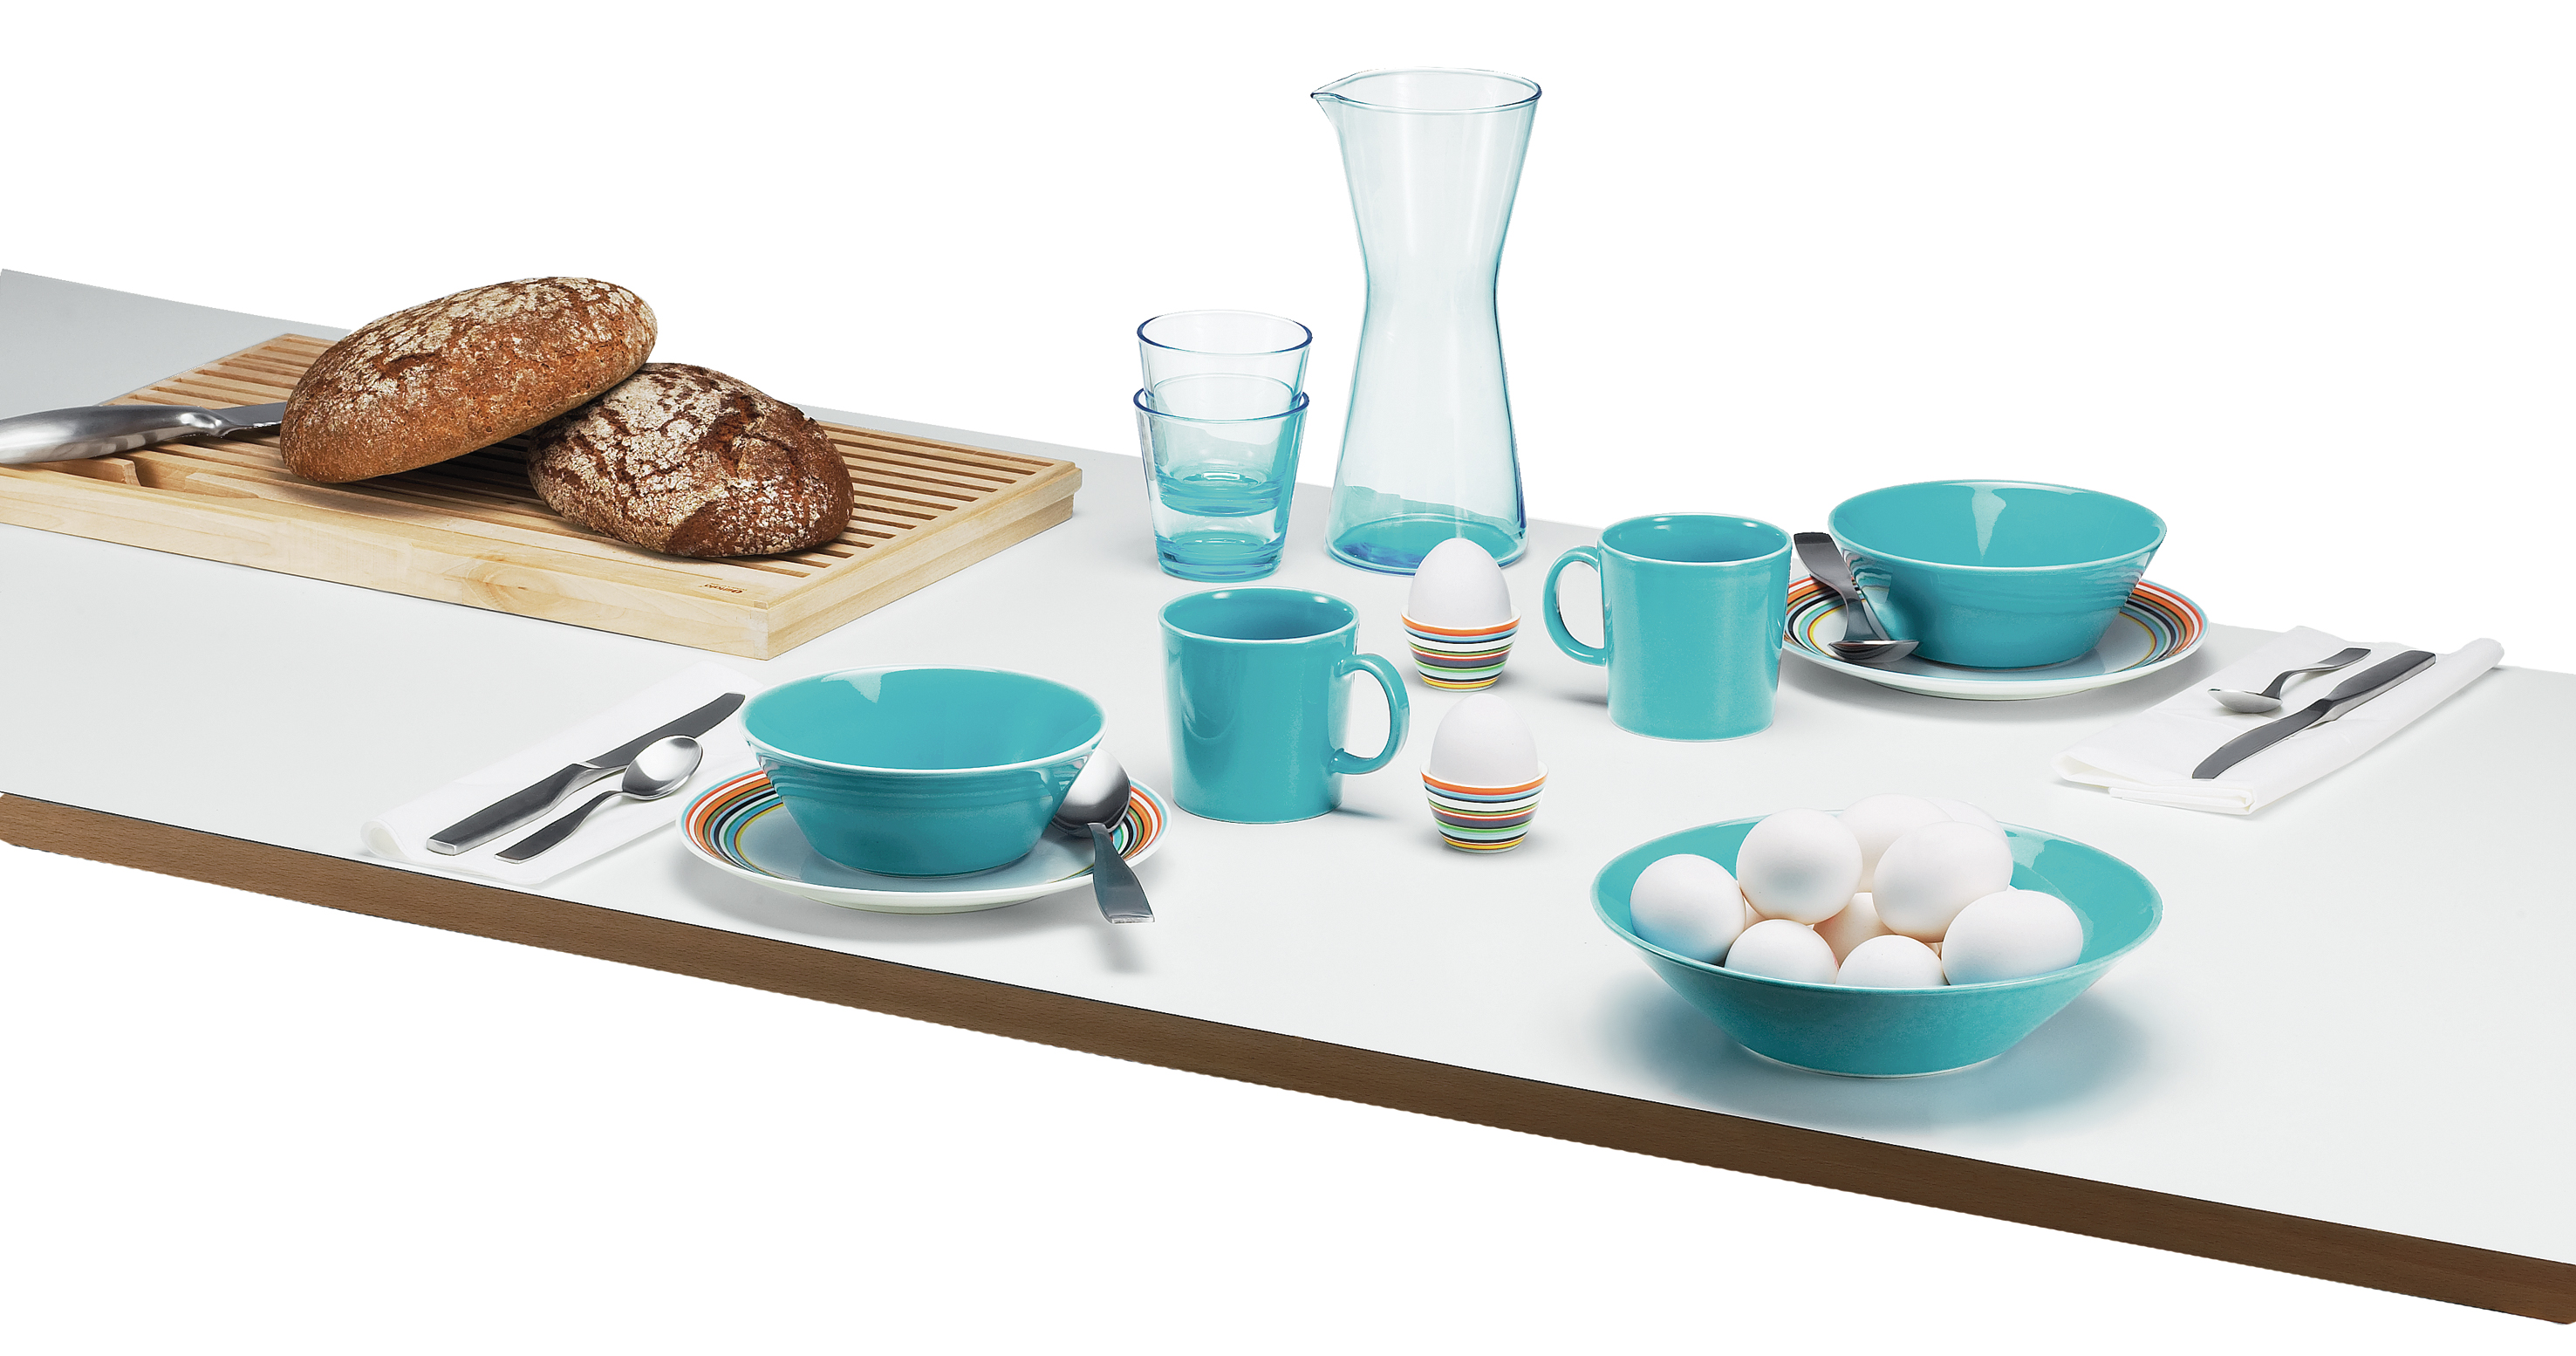 Teema Setting  sc 1 th 163 & Contemporary Dinnerware from the Casual to the Fine: Finnish ...